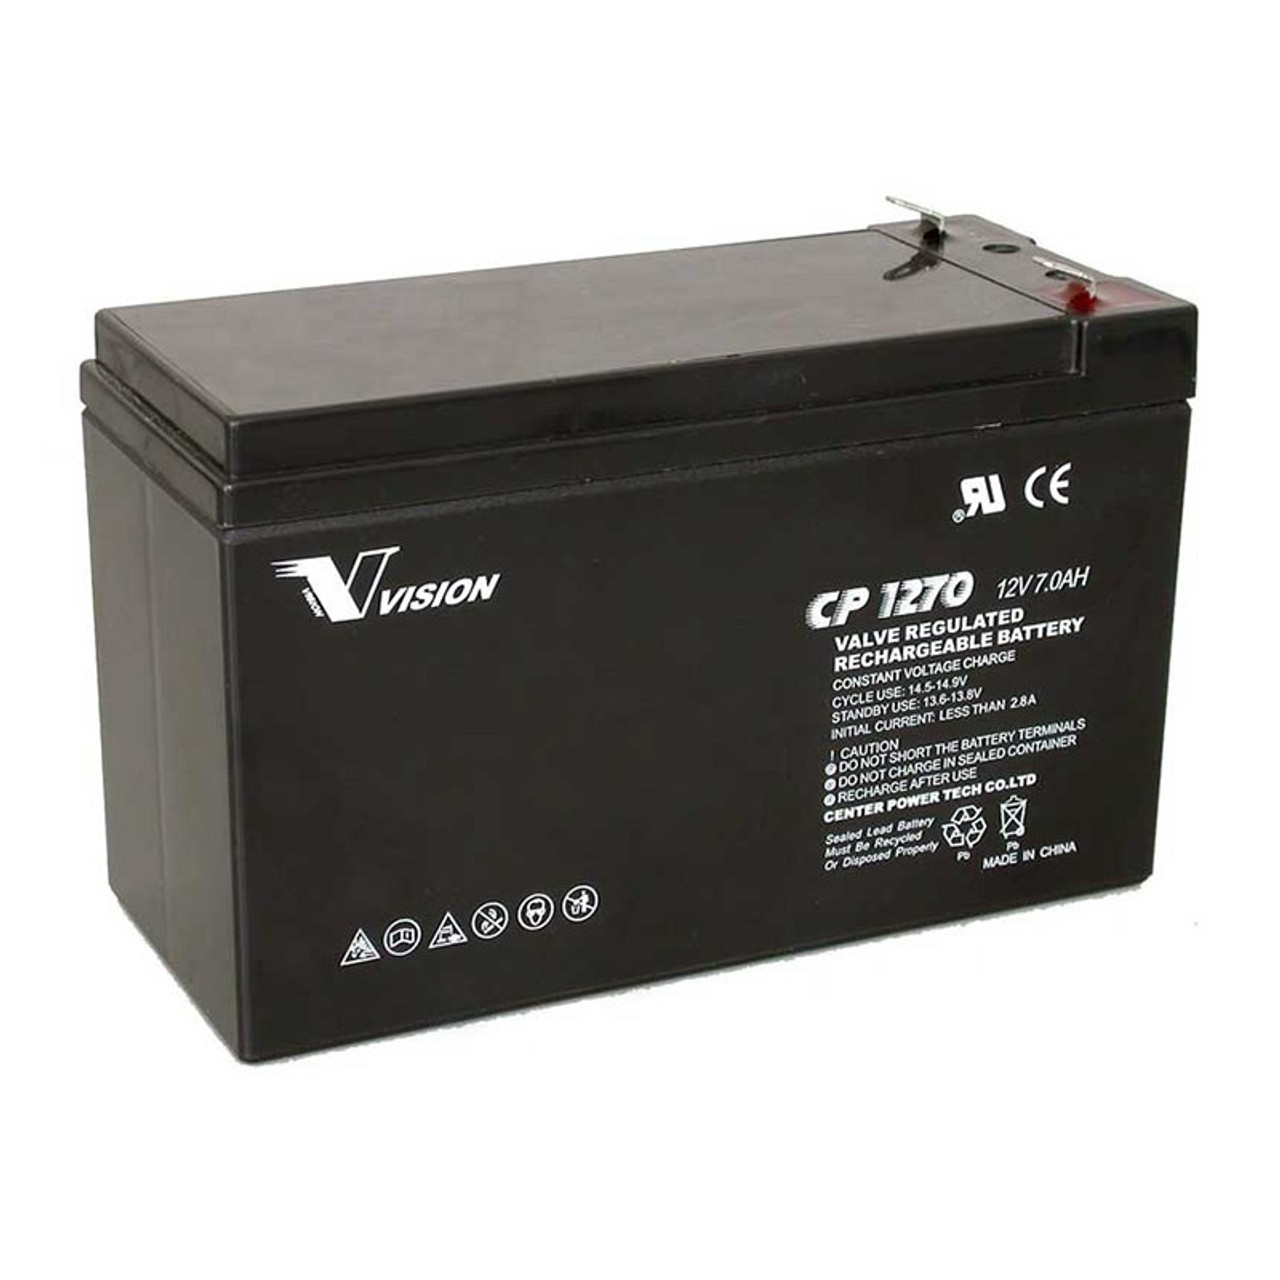 Image for Vision VRLA CP1270EB 12V 7Ah UPS Replacement Battery CX Computer Superstore